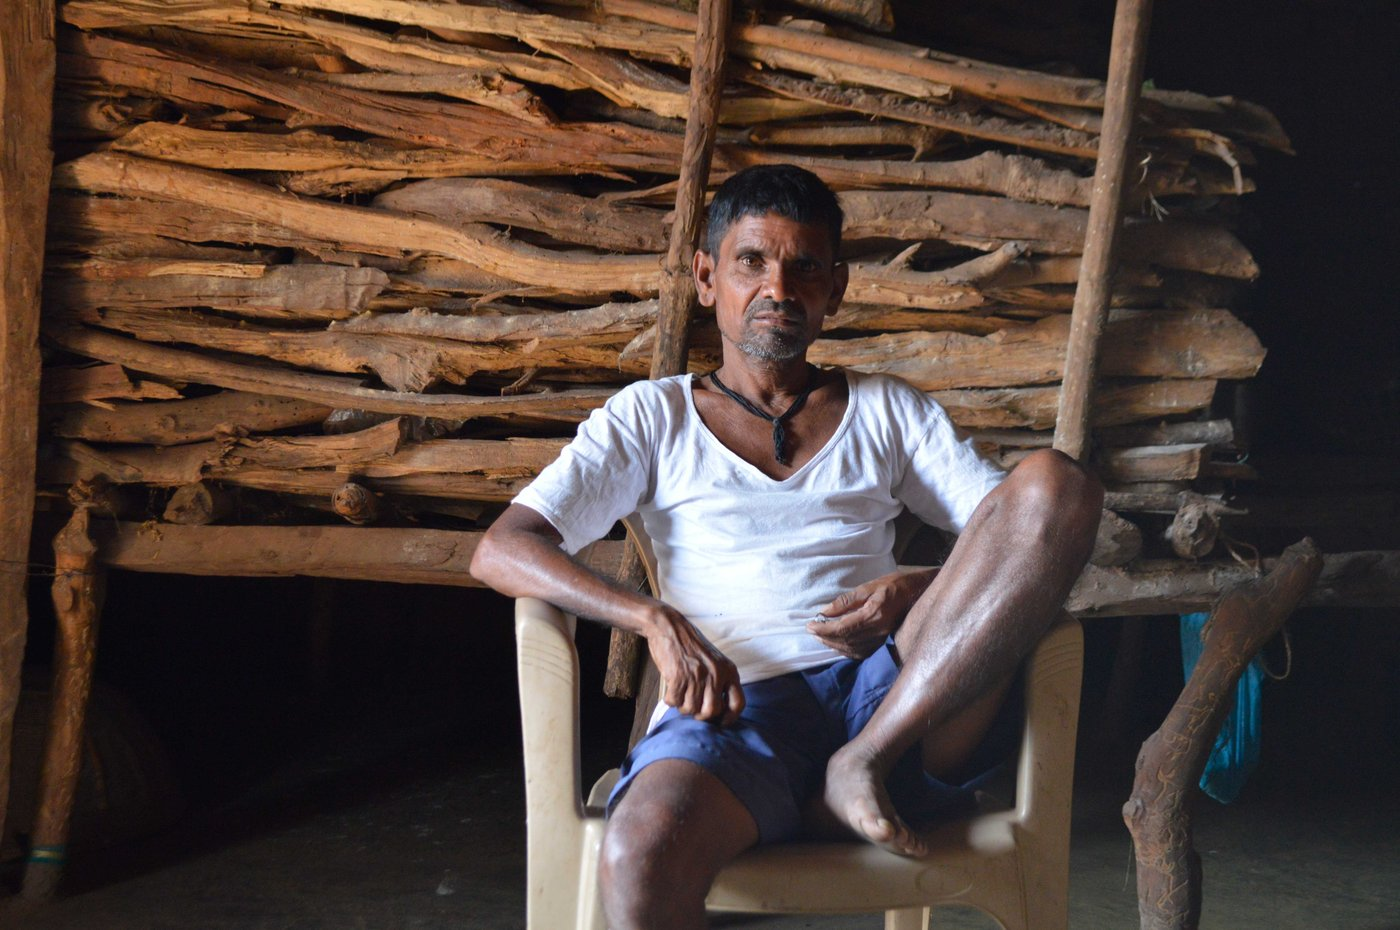 Left: Bhagat Kalu Jangali at his home in Pangri village in Mokhada taluka. Right: Bhagat Subhash Katkari with several of his clients on a Sunday at his home in Deharje village of Vikramgad taluka in Palghar district